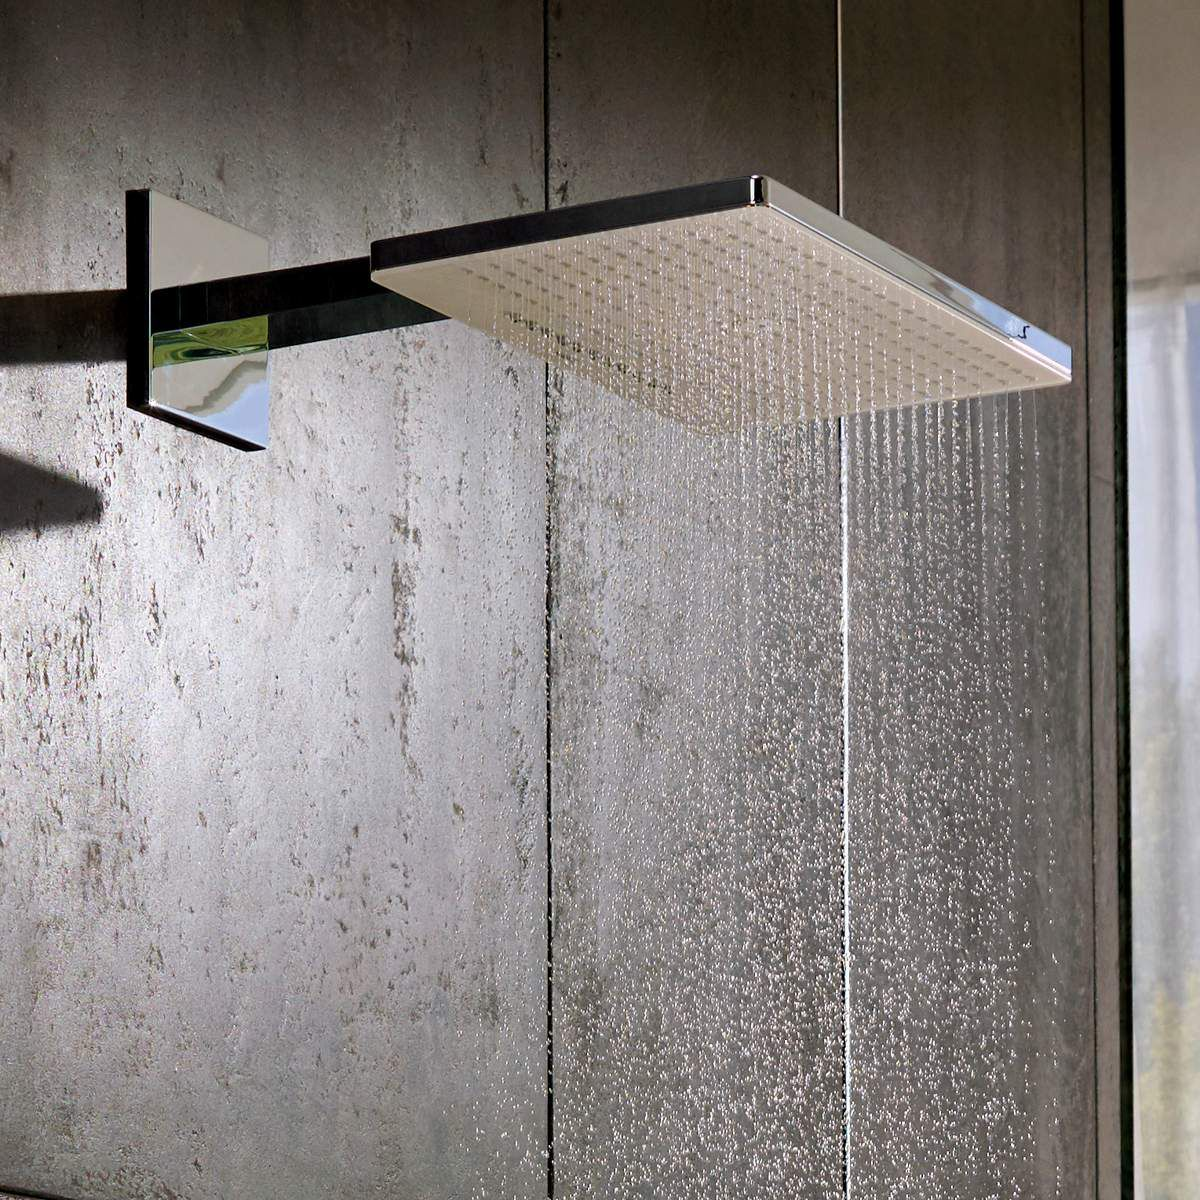 hansgrohe rainmaker select 460 overhead shower with shower arm uk bathrooms